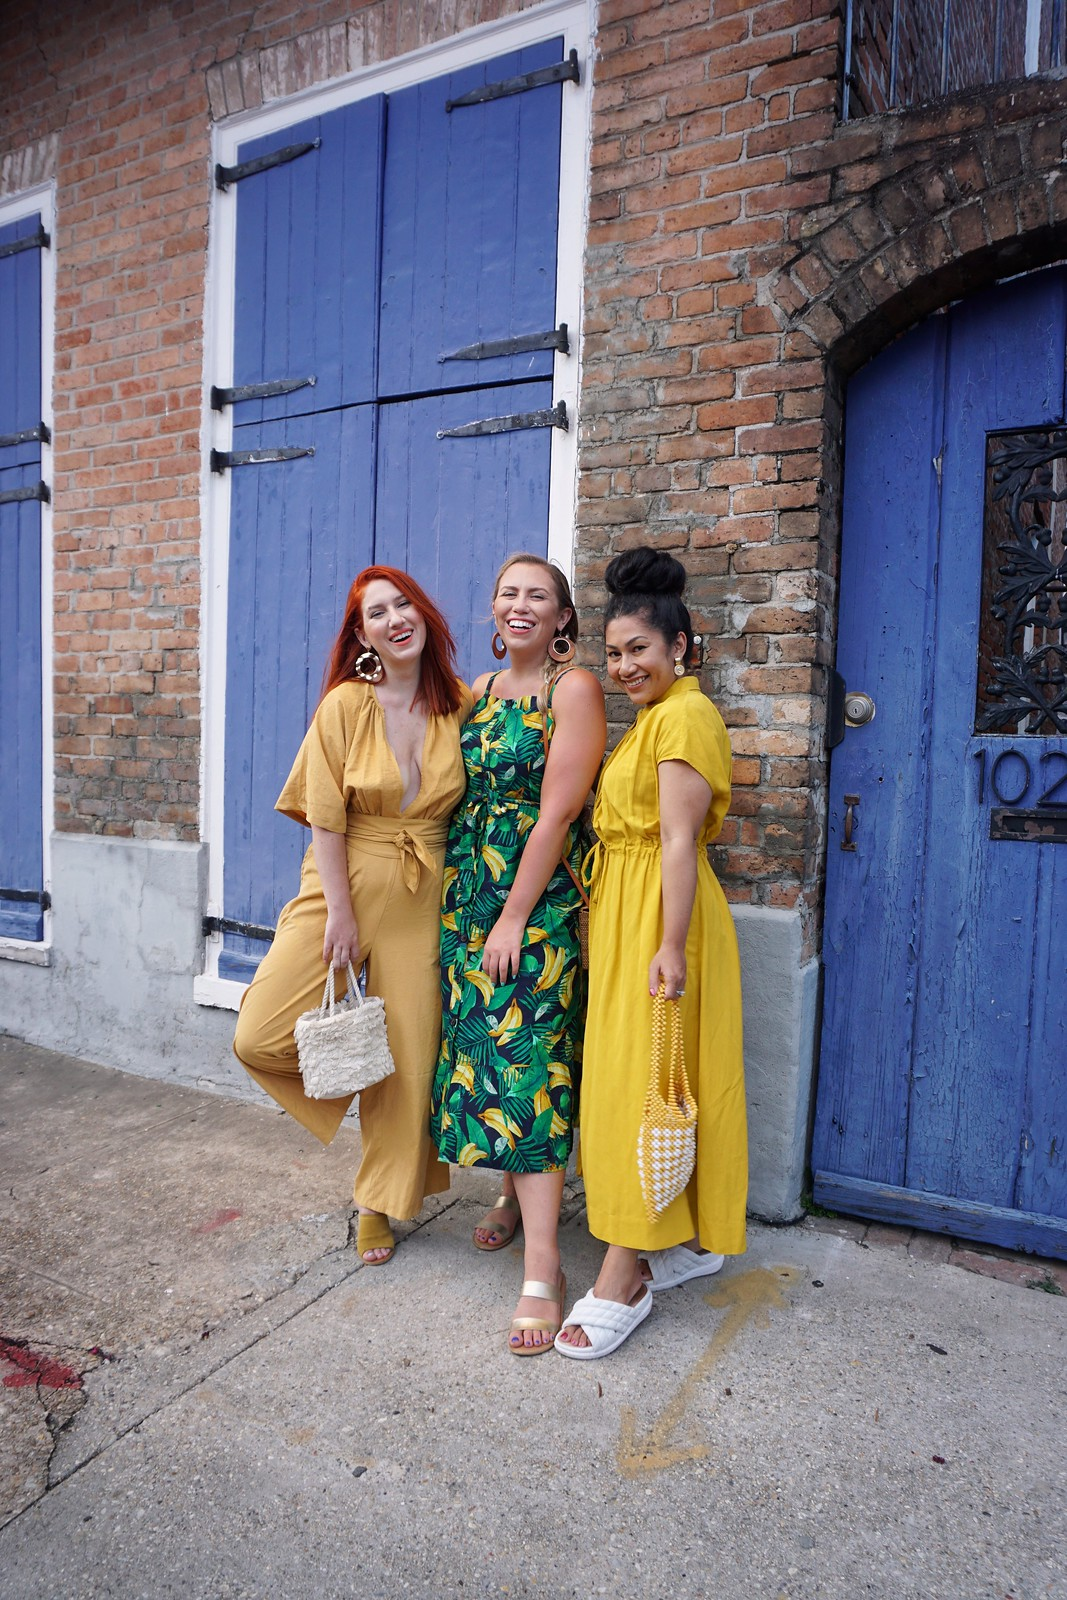 New Orleans Girls Trip | French Quarter | How to Spend 48 Hours in New Orleans in the Summer | New Orleans Travel Guide | What to do in New Orleans | 2 Days in New Orleans | Best Things to do in New Orleans | First Timer's Guide to NOLA | NOLA Travel Guide | 2 Day Itinerary for New Orleans